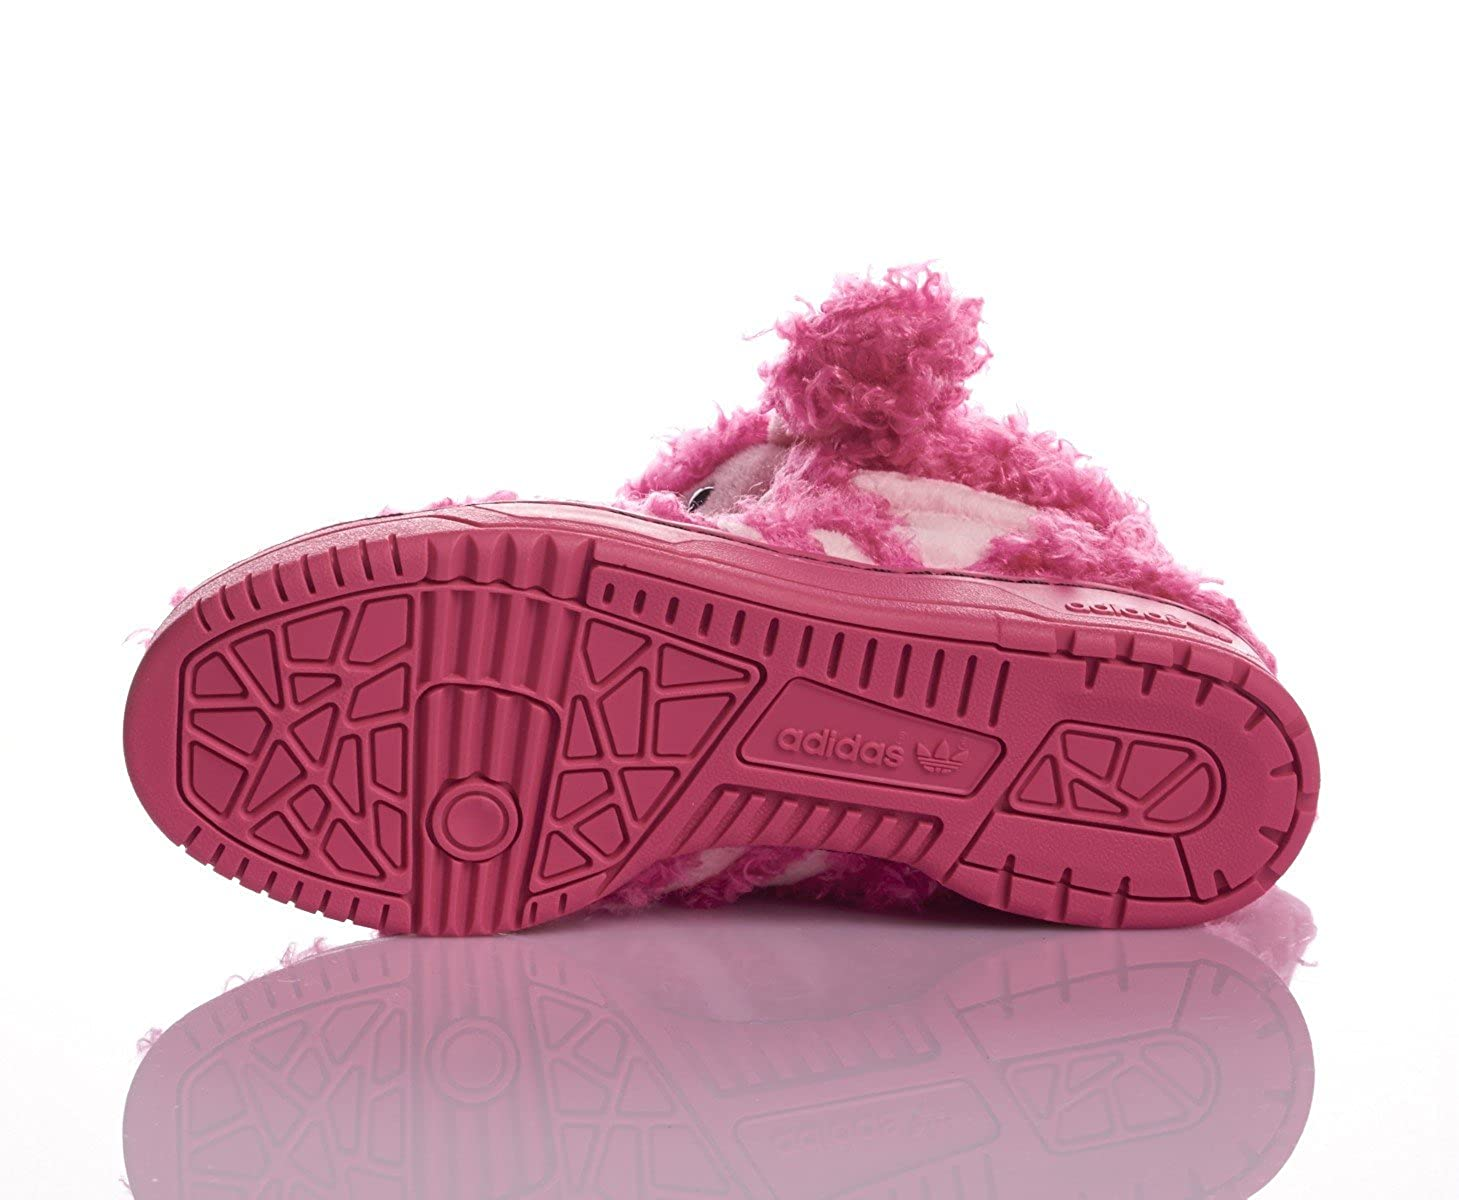 low priced 895d4 3272b Amazon.com   Adidas Jeremy Scott JS Poodle LTD Sneaker pink, EU Shoe  Size EUR 44.5   Fashion Sneakers